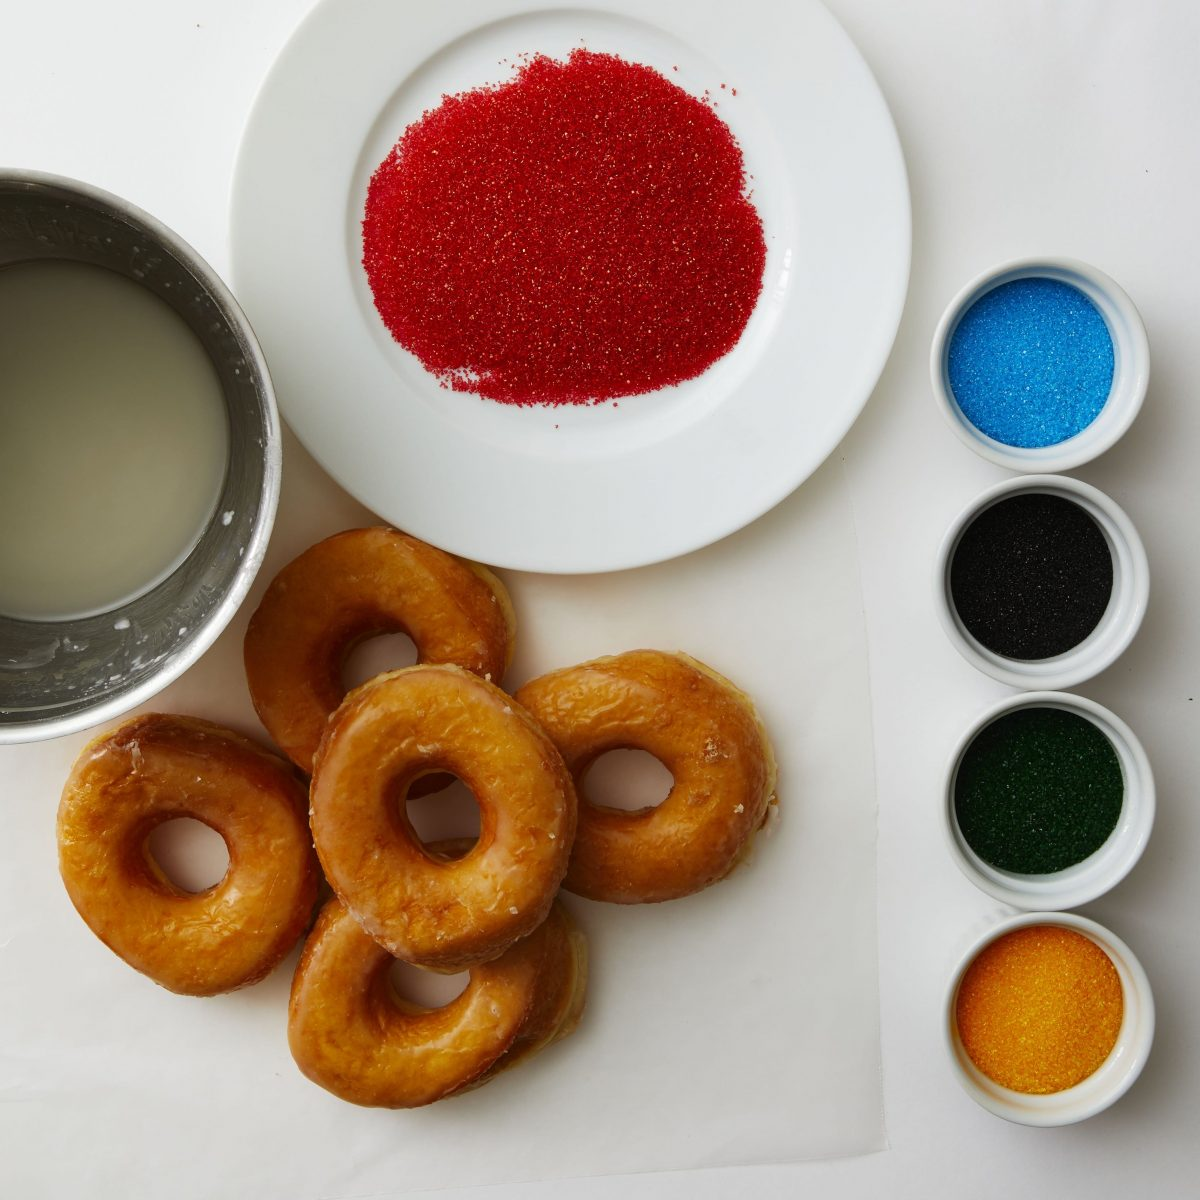 Darcy Miller Designs, Doughnut rings, Olympics, Olympics 2018, PyeongChang, doughnuts, sprinkles, sugar, Olympic rings, snack, breakfast, party, edible craft, Darcy Miller, DIY